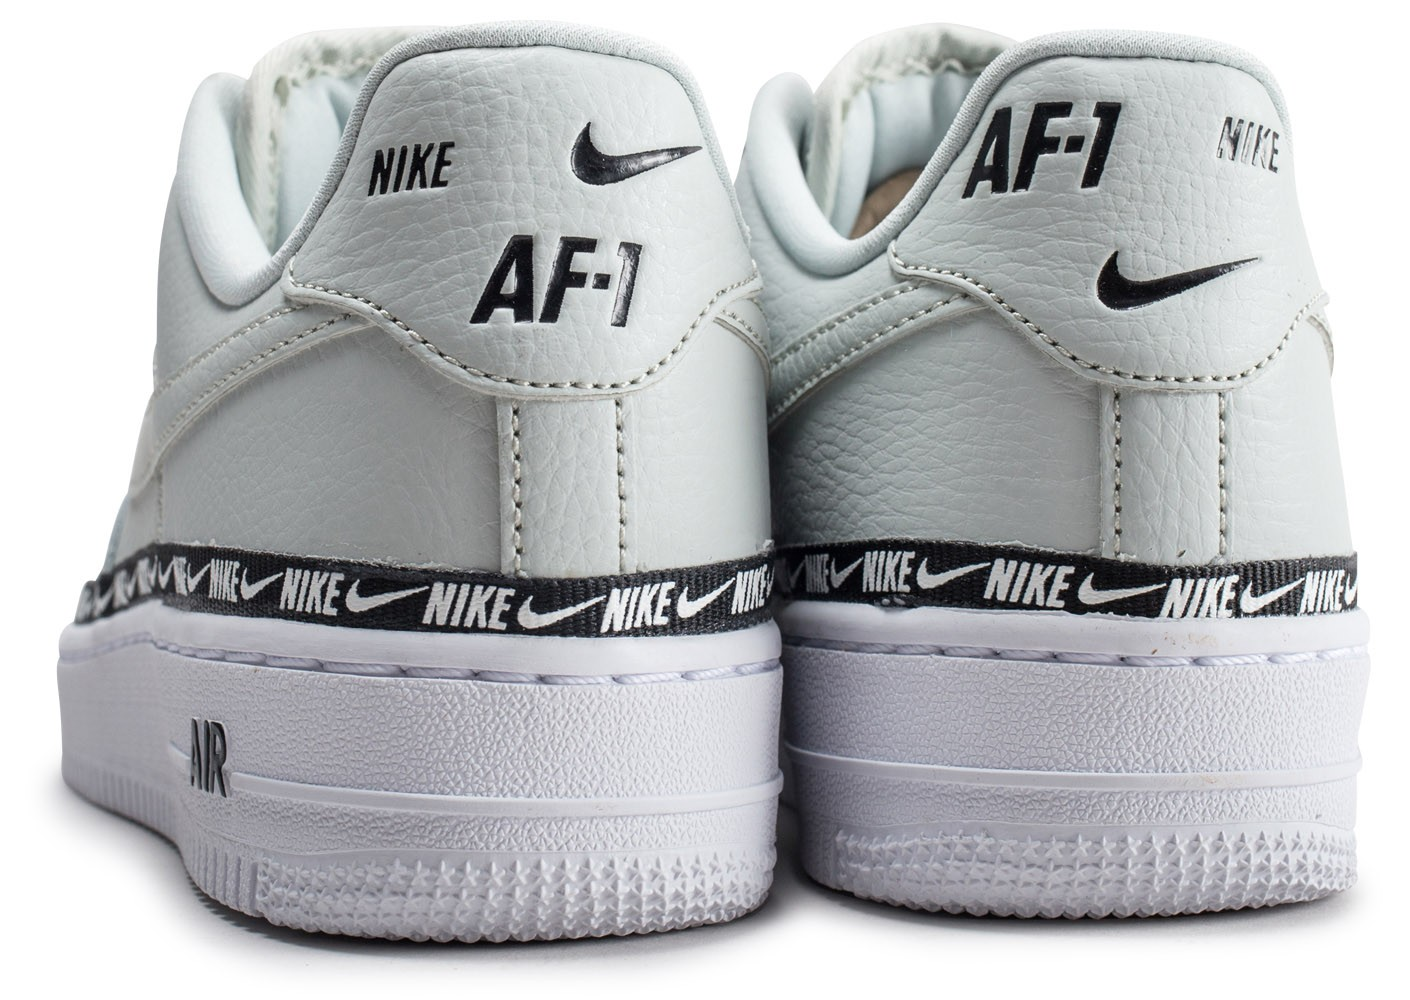 Nike Air Force 1'07 SE Premium argent femme - Chaussures ...